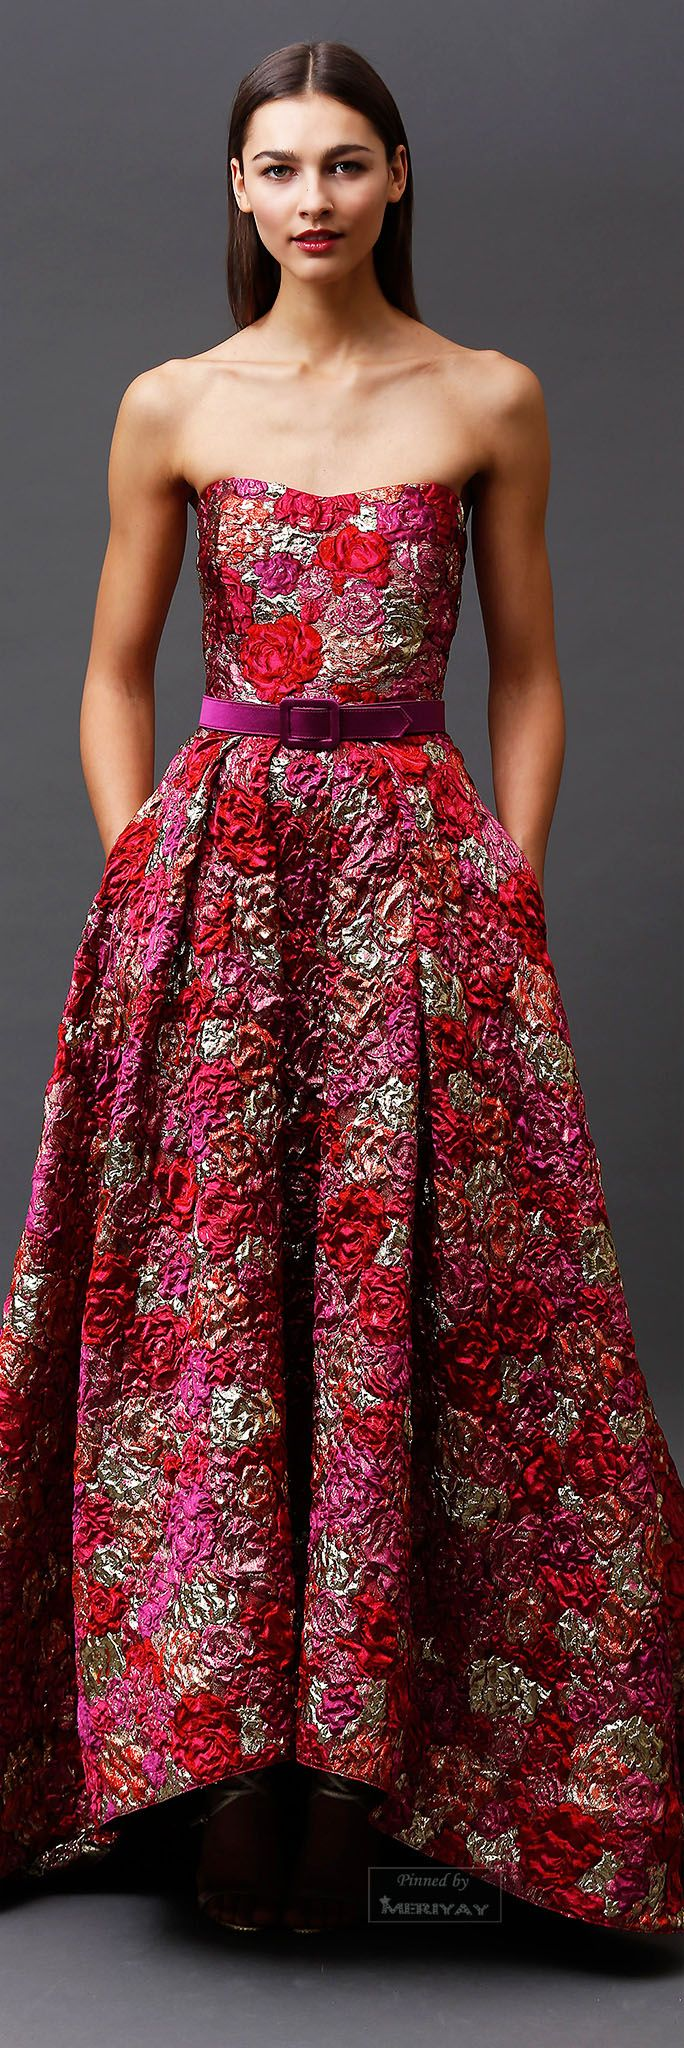 Badgley Mischka.Pre-Fall 2015. We should be encouraged to come dressed like this to our office..... I work for the government. :) I can't afford it and I would love to wear this to work.